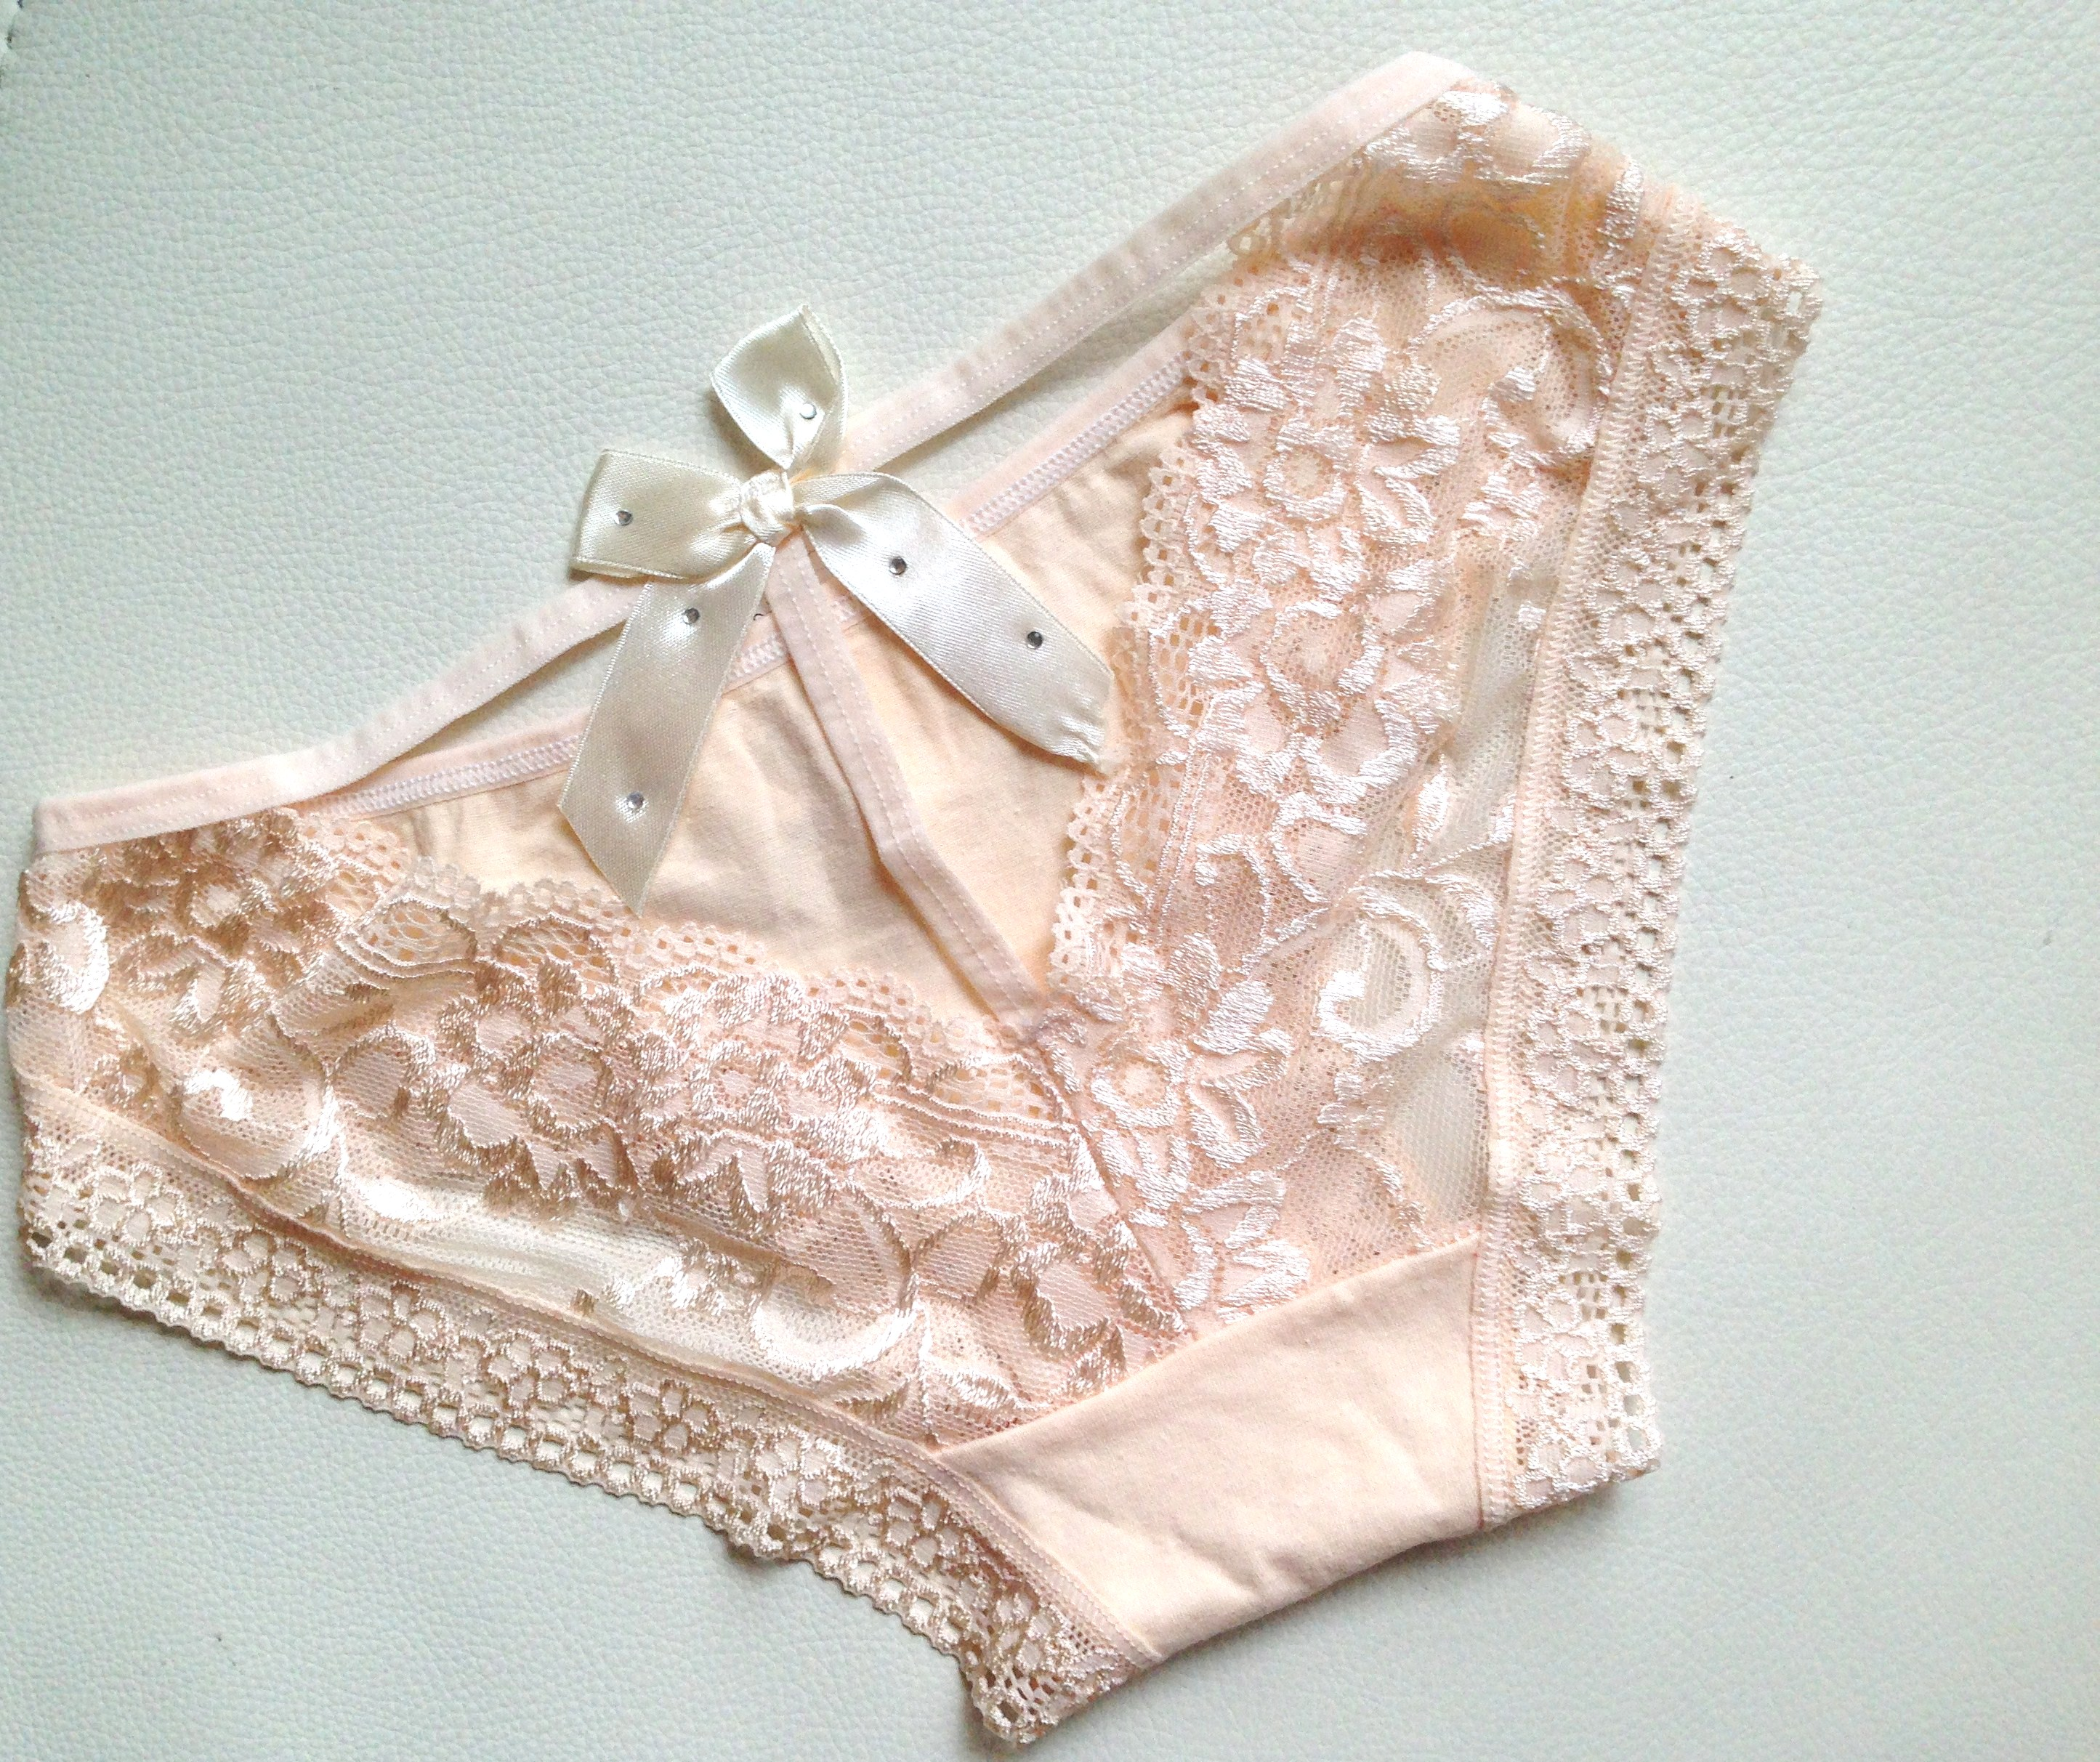 e28ebce9f New Sexy Butterfly Lace Women s Panties